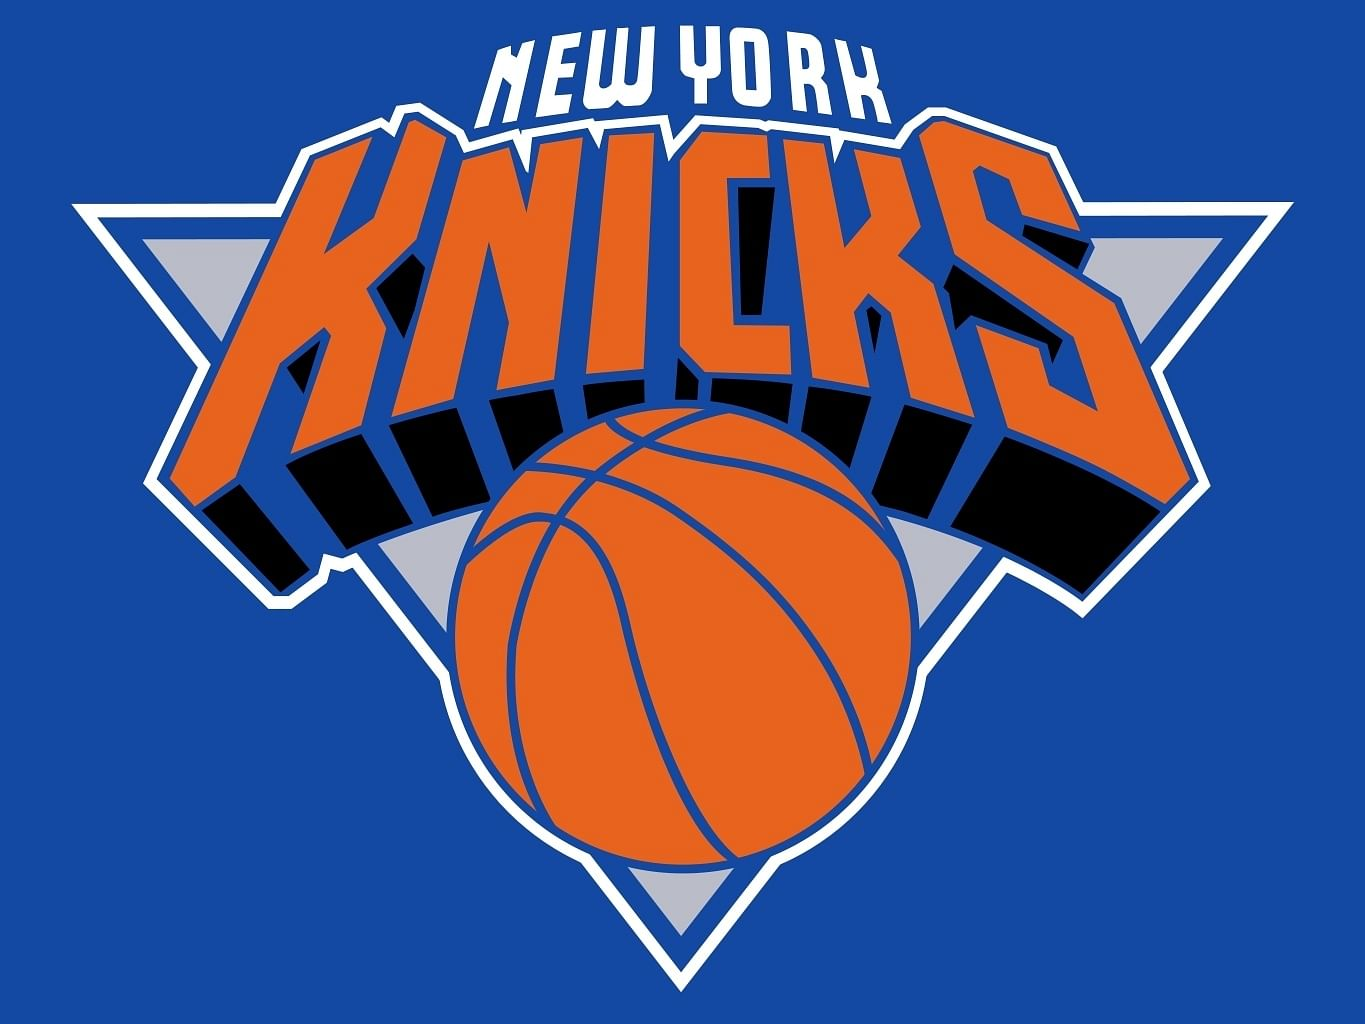 When will the New York Knicks odyssey end?